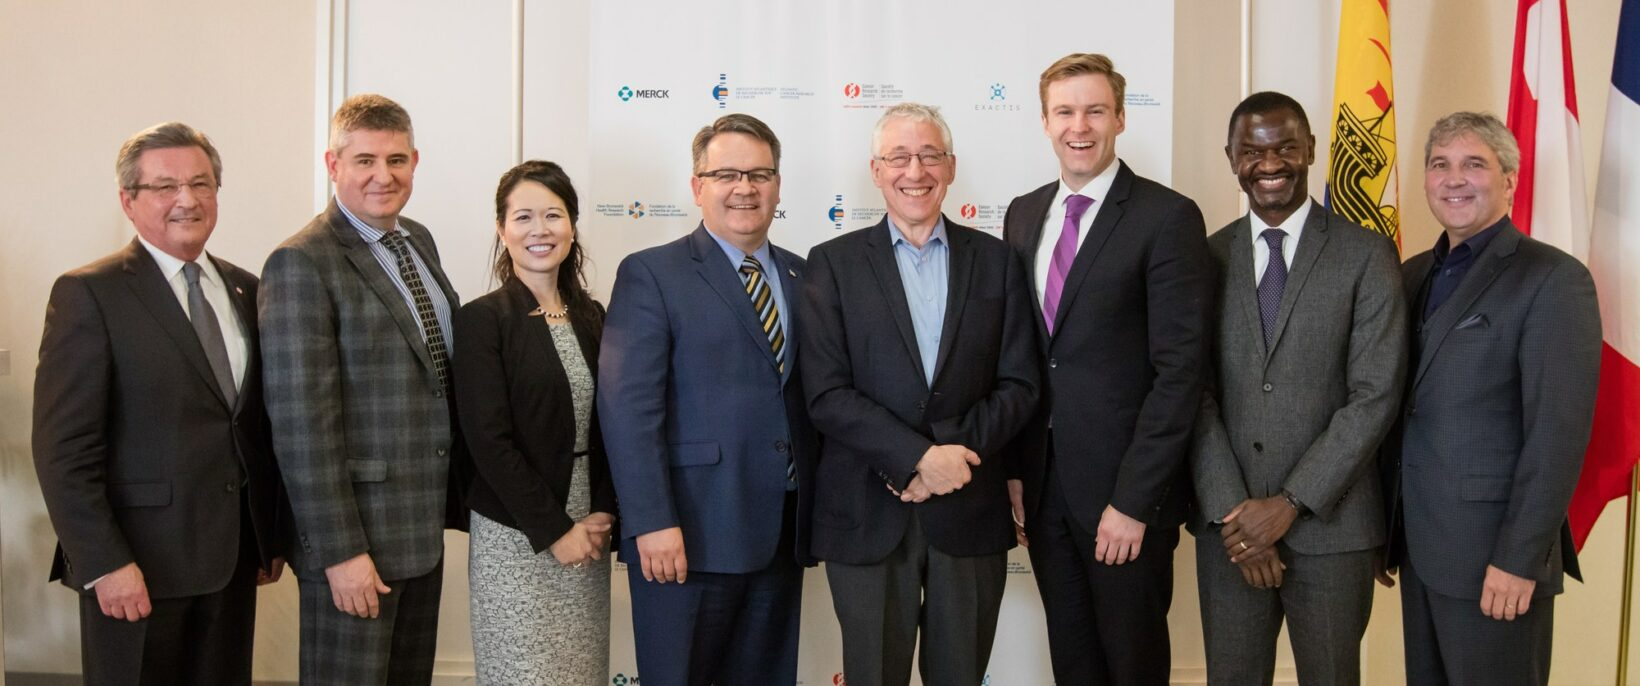 Government and industry representatives gathered this morning at the Dr. Georges-L.-Dumont University Hospital Centre in Moncton, New Brunswick, to announce a $4 million partnership in support of the